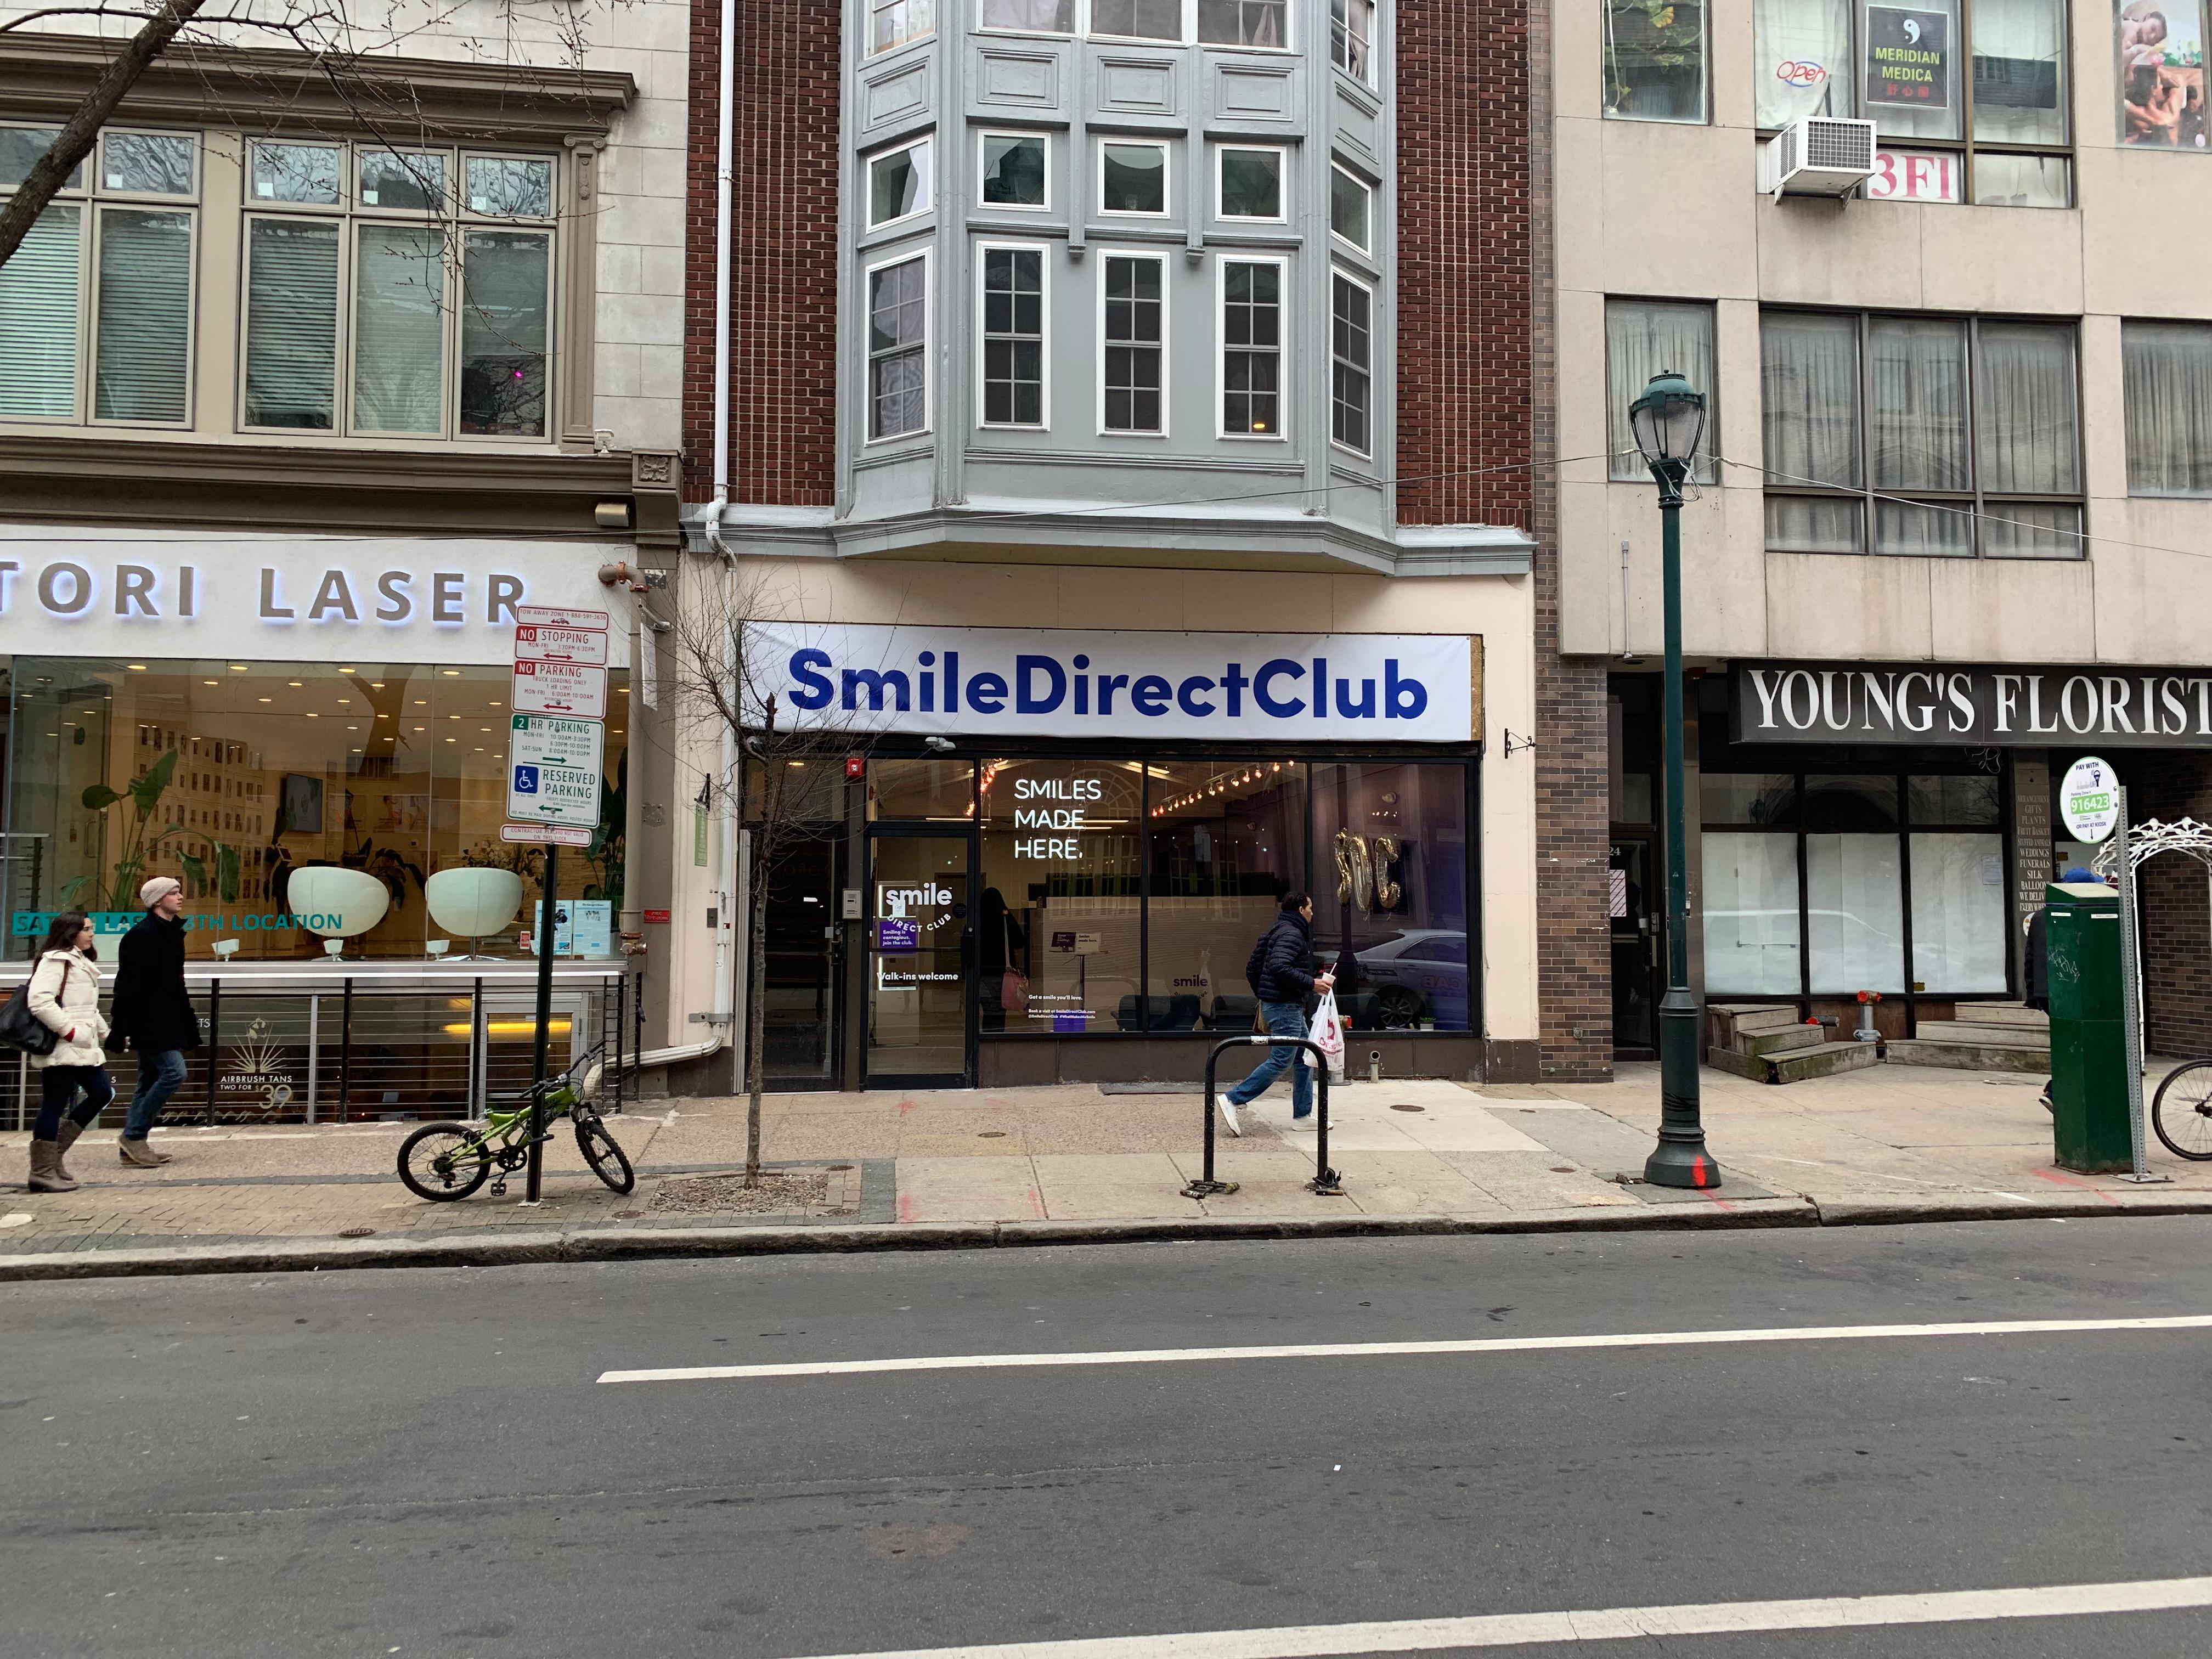 Smile Direct Club image 1